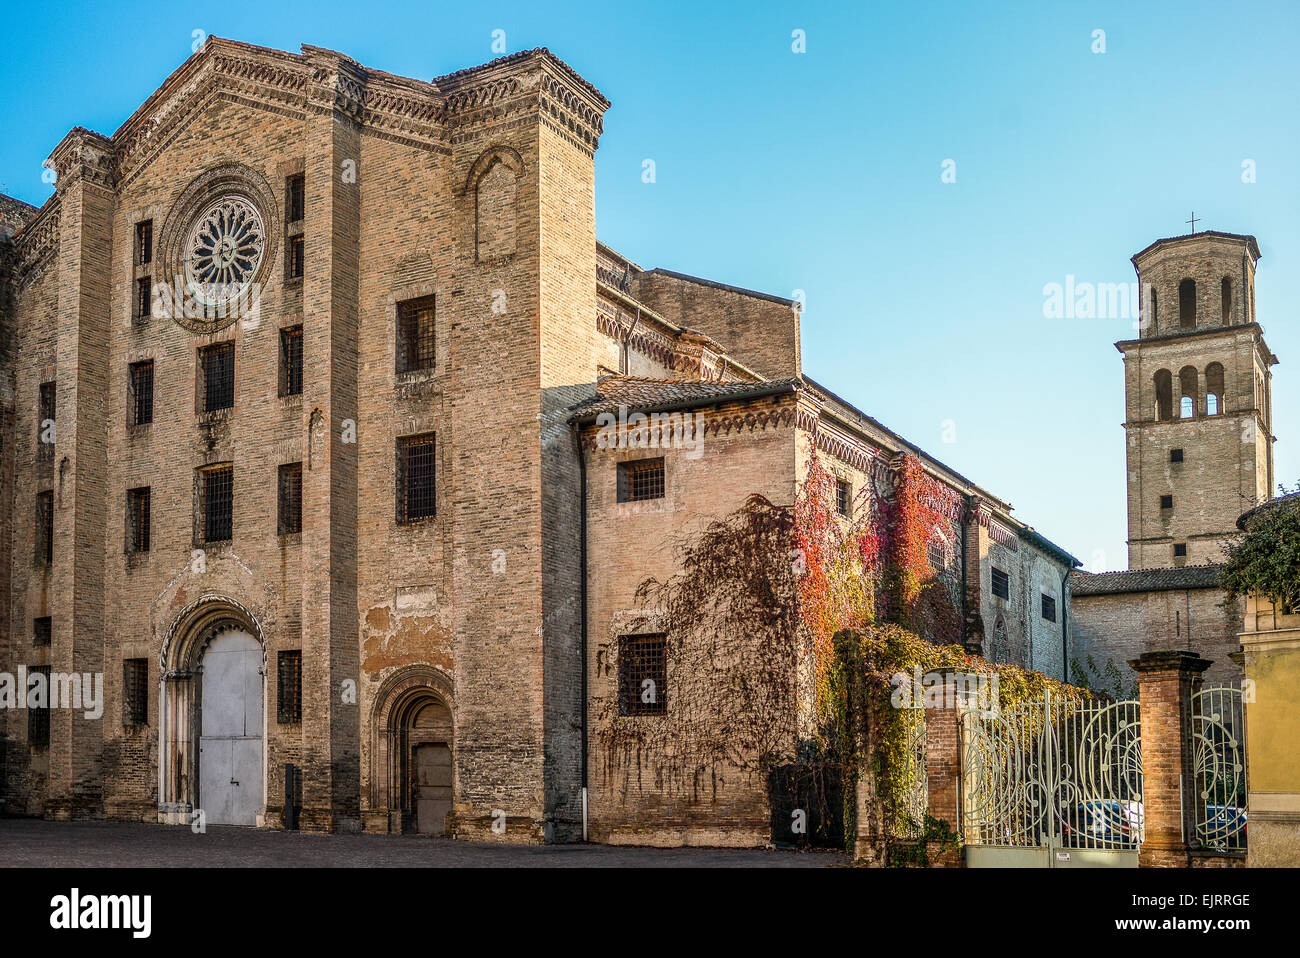 Parma,the desecrated church of St. Francis converted into a prison - Stock Image